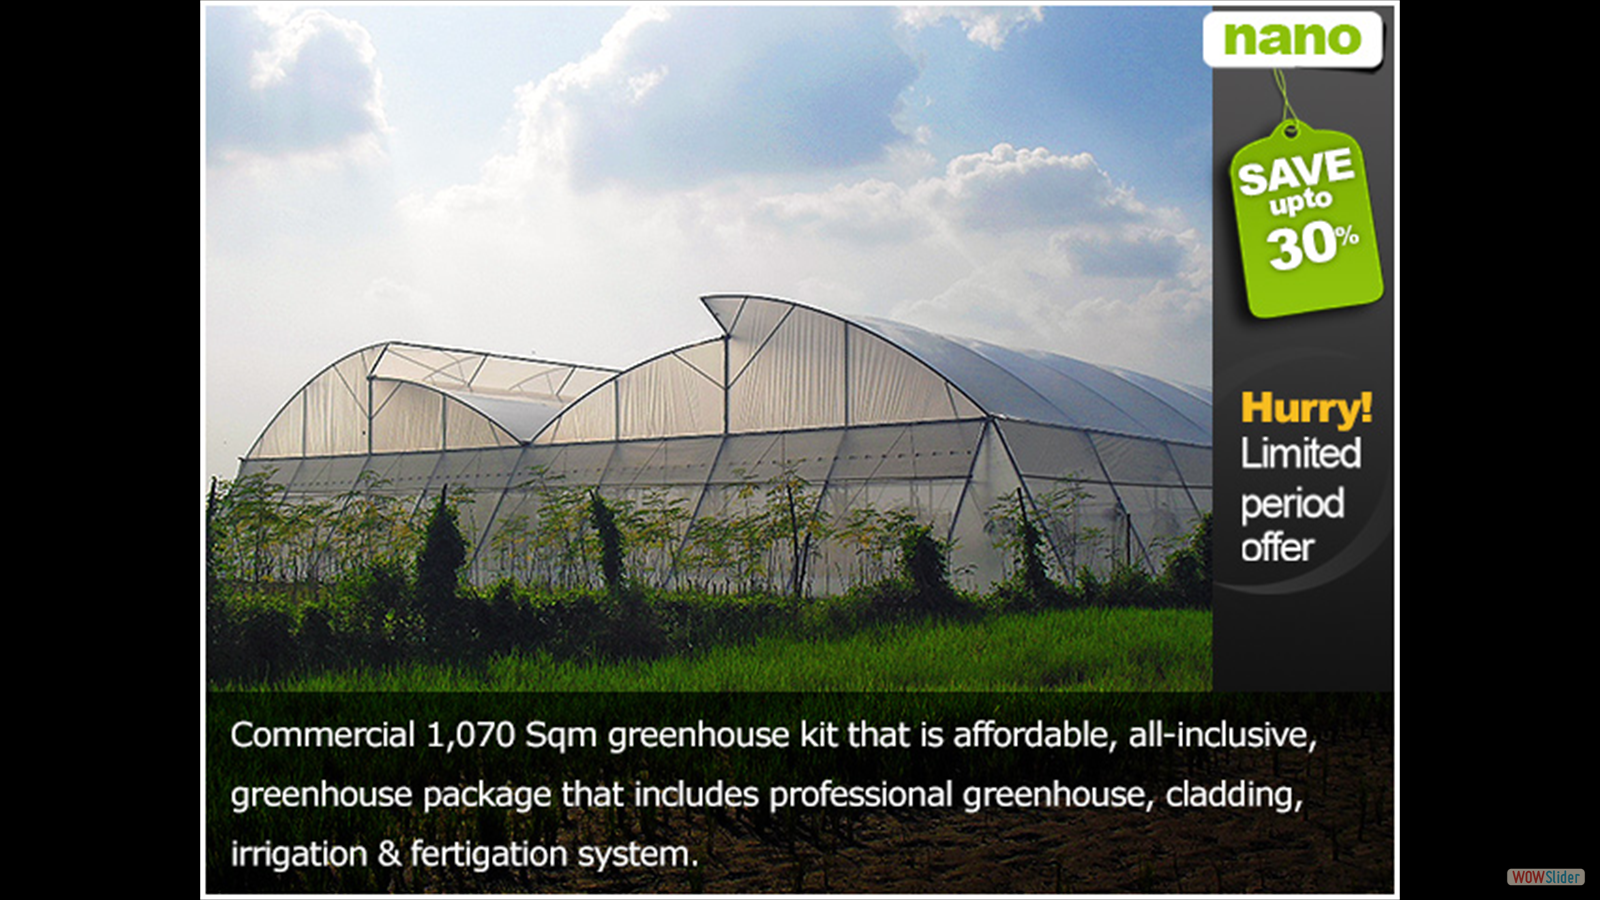 This type of greenhouse is the goal of the project - ordered summer 2015